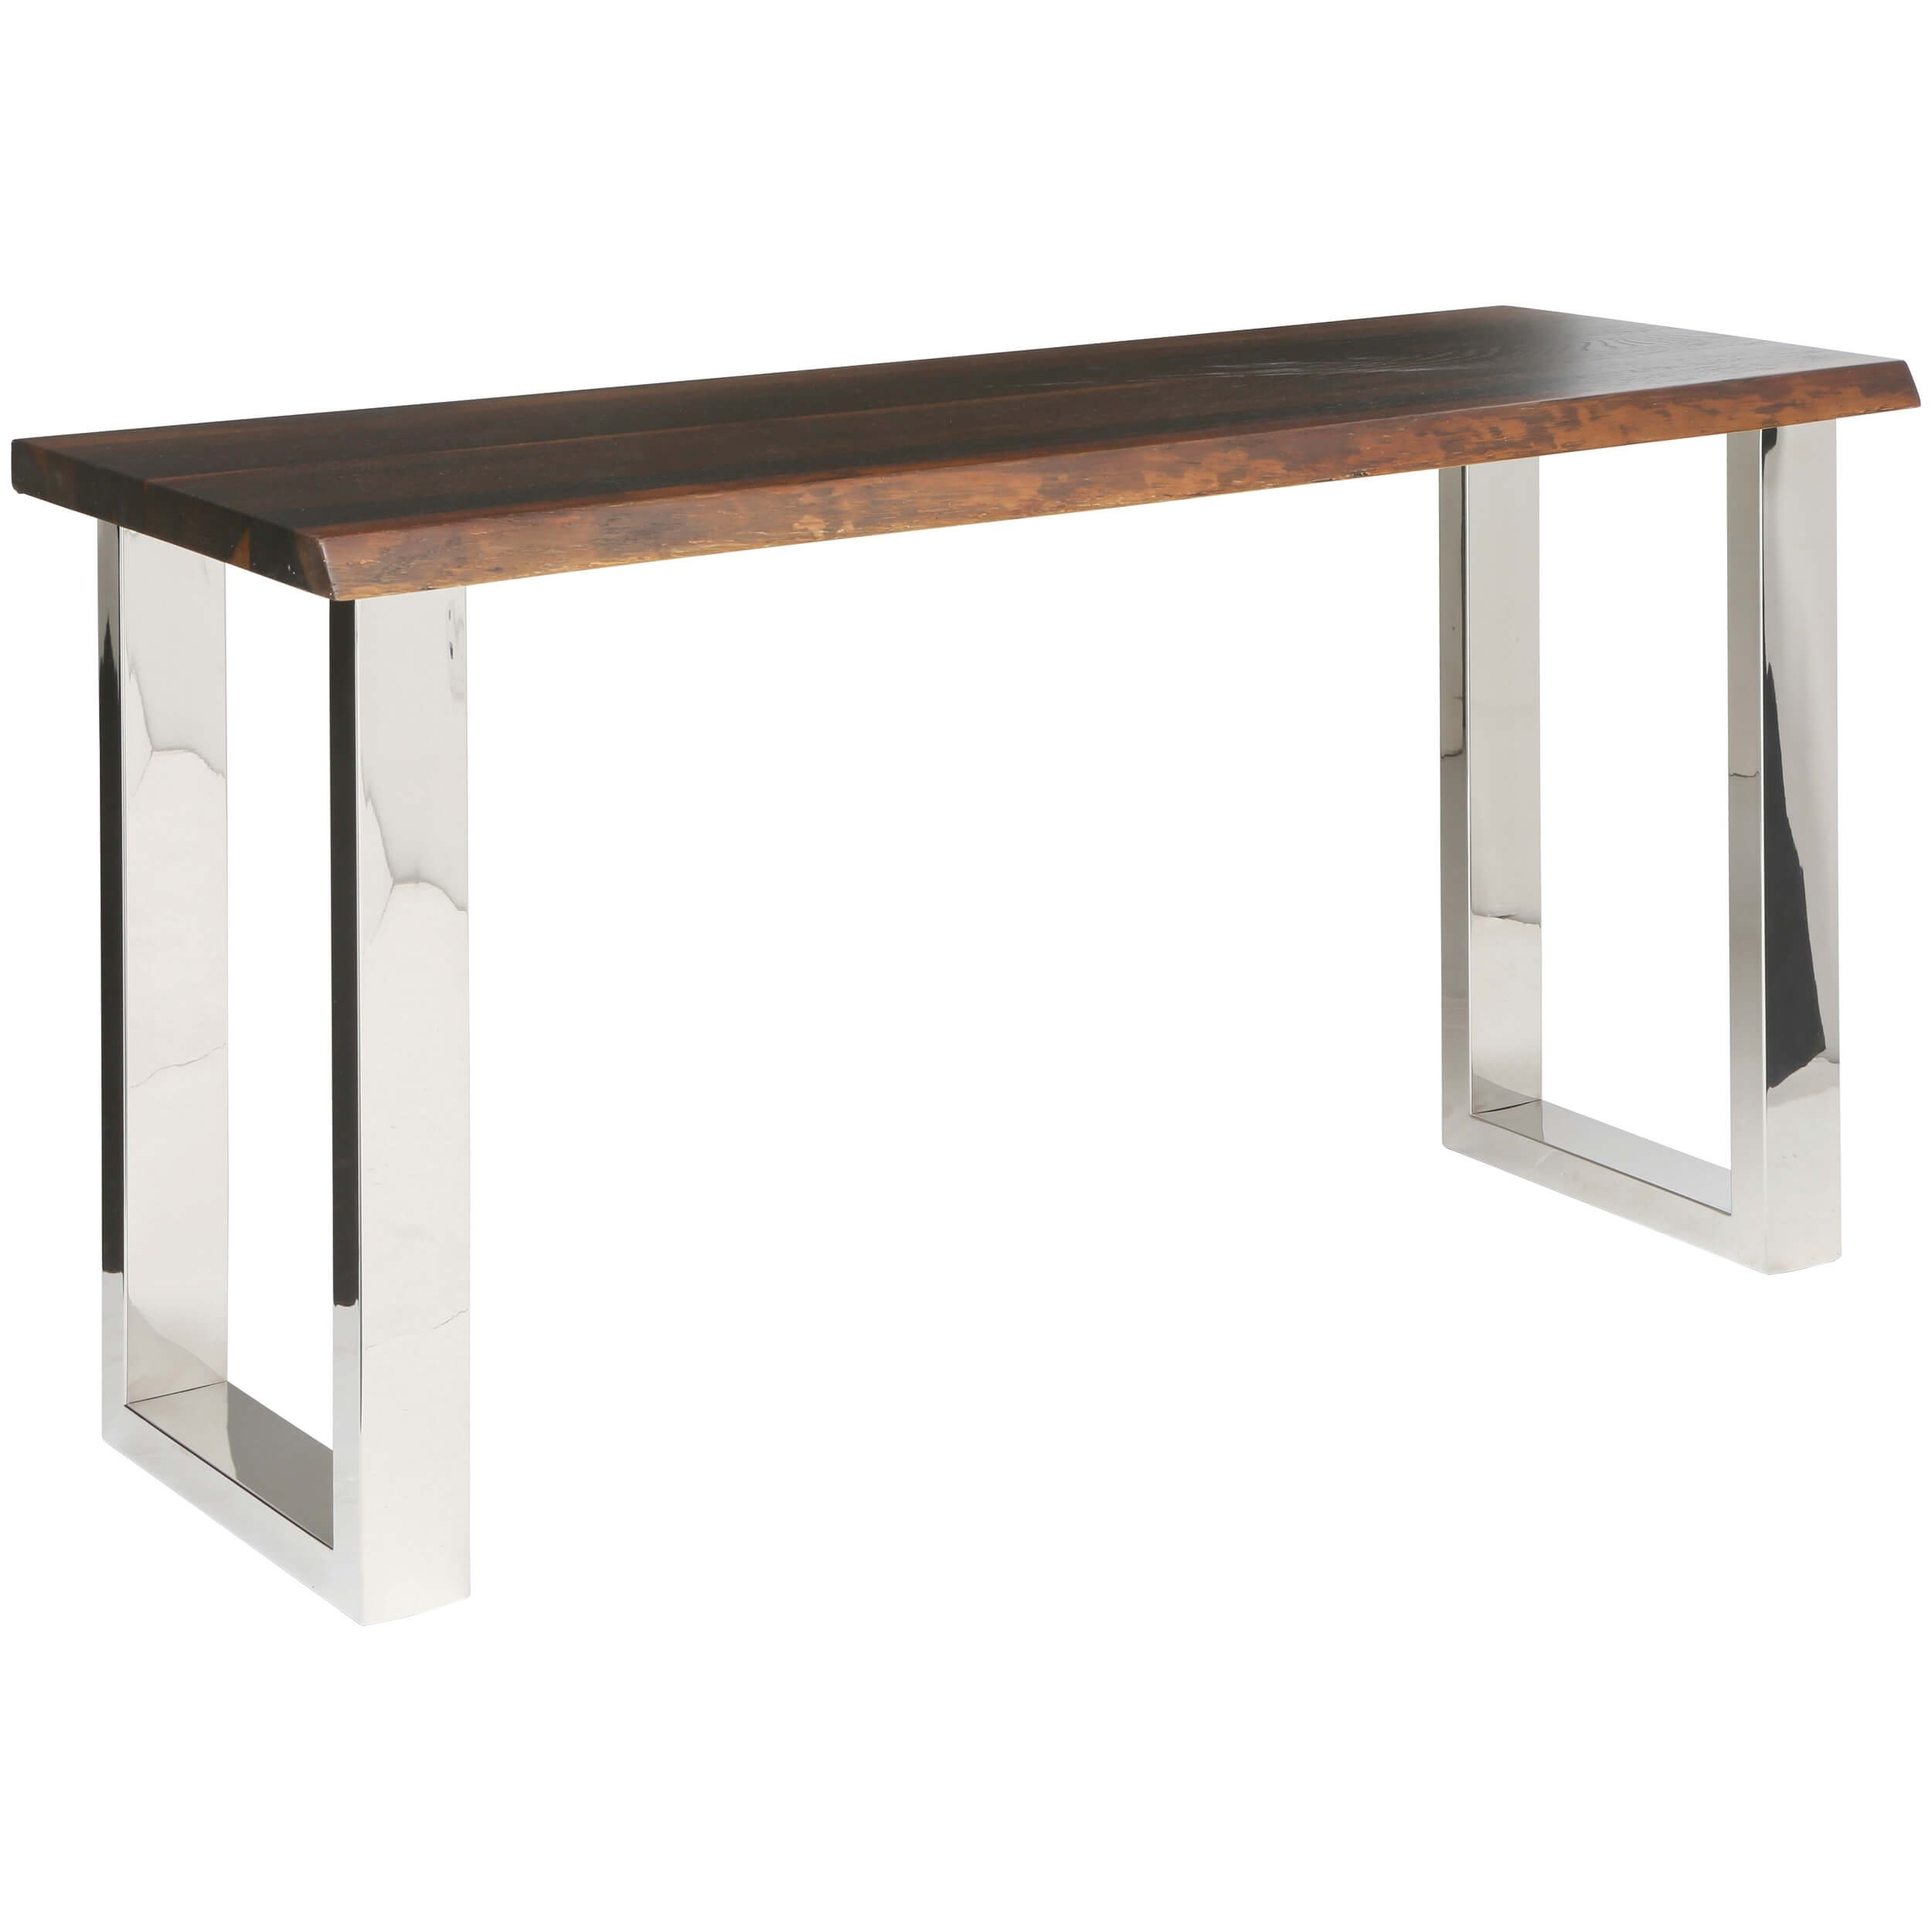 lyon console table seared oak accent furniture tables drawer pulls and knobs metal patio with umbrella hole black pedestal end interior ideas west elm marble wood top side target